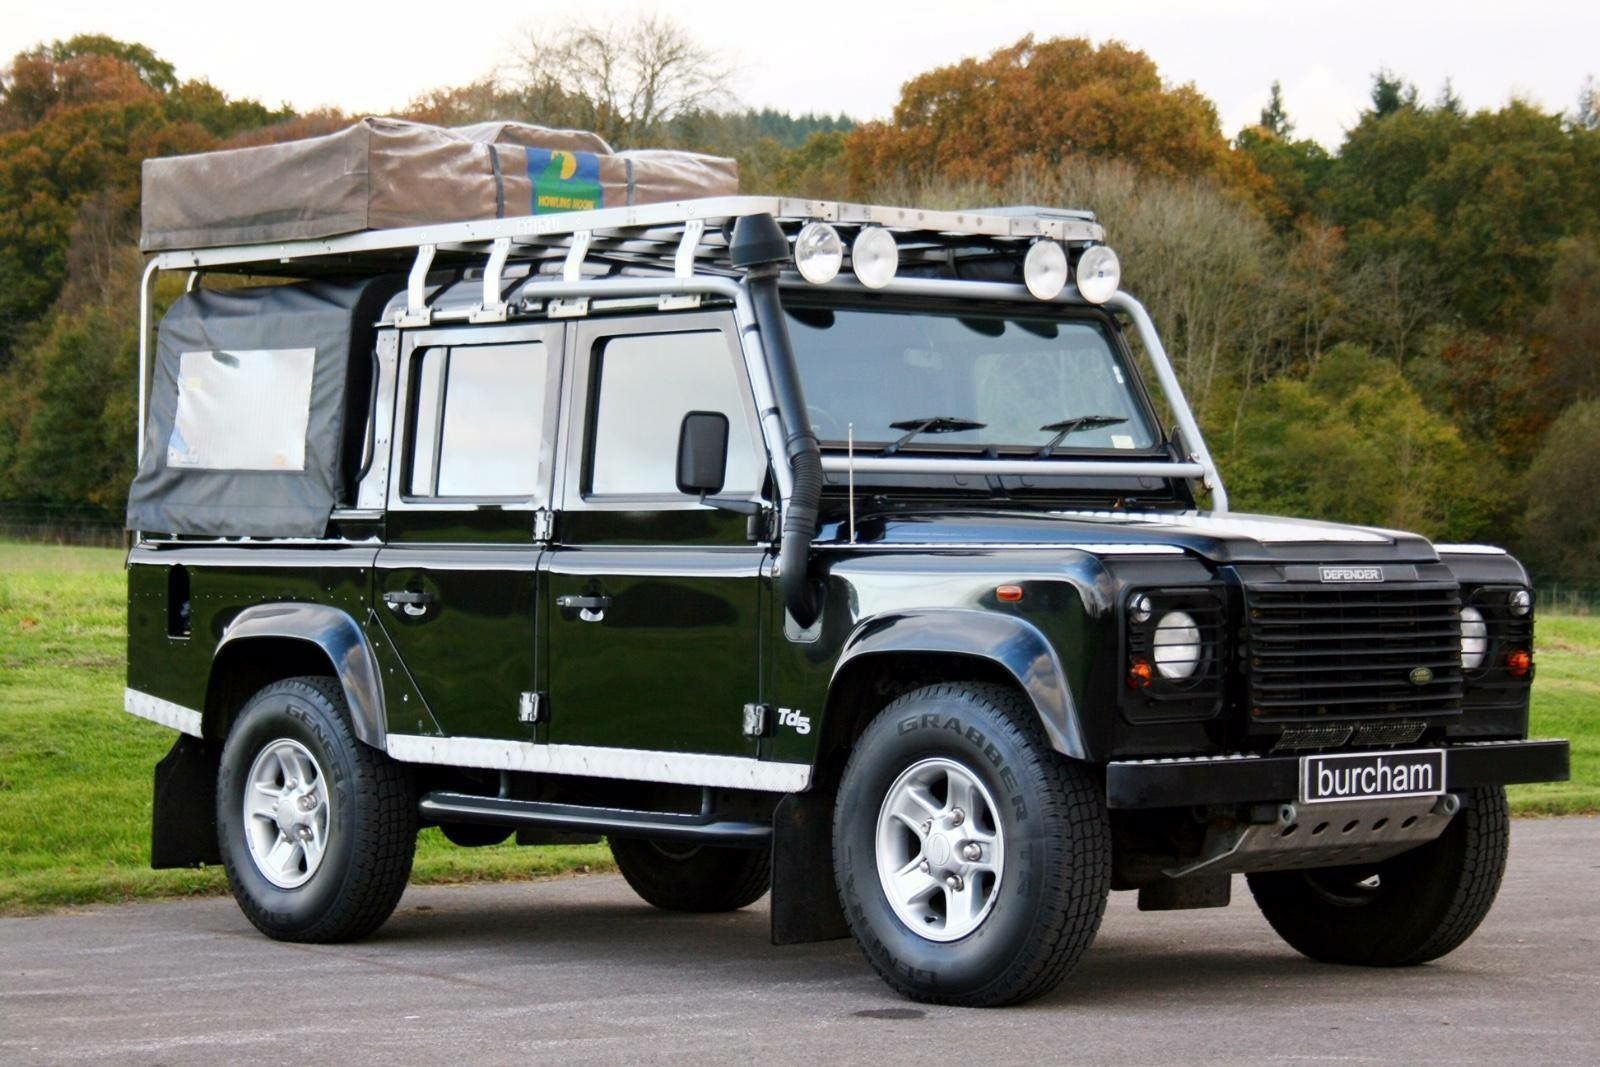 Land Rover Defender 110 Double Cab With Rooftop Tent Land Rover Defender 110 Land Rover Defender Land Rover